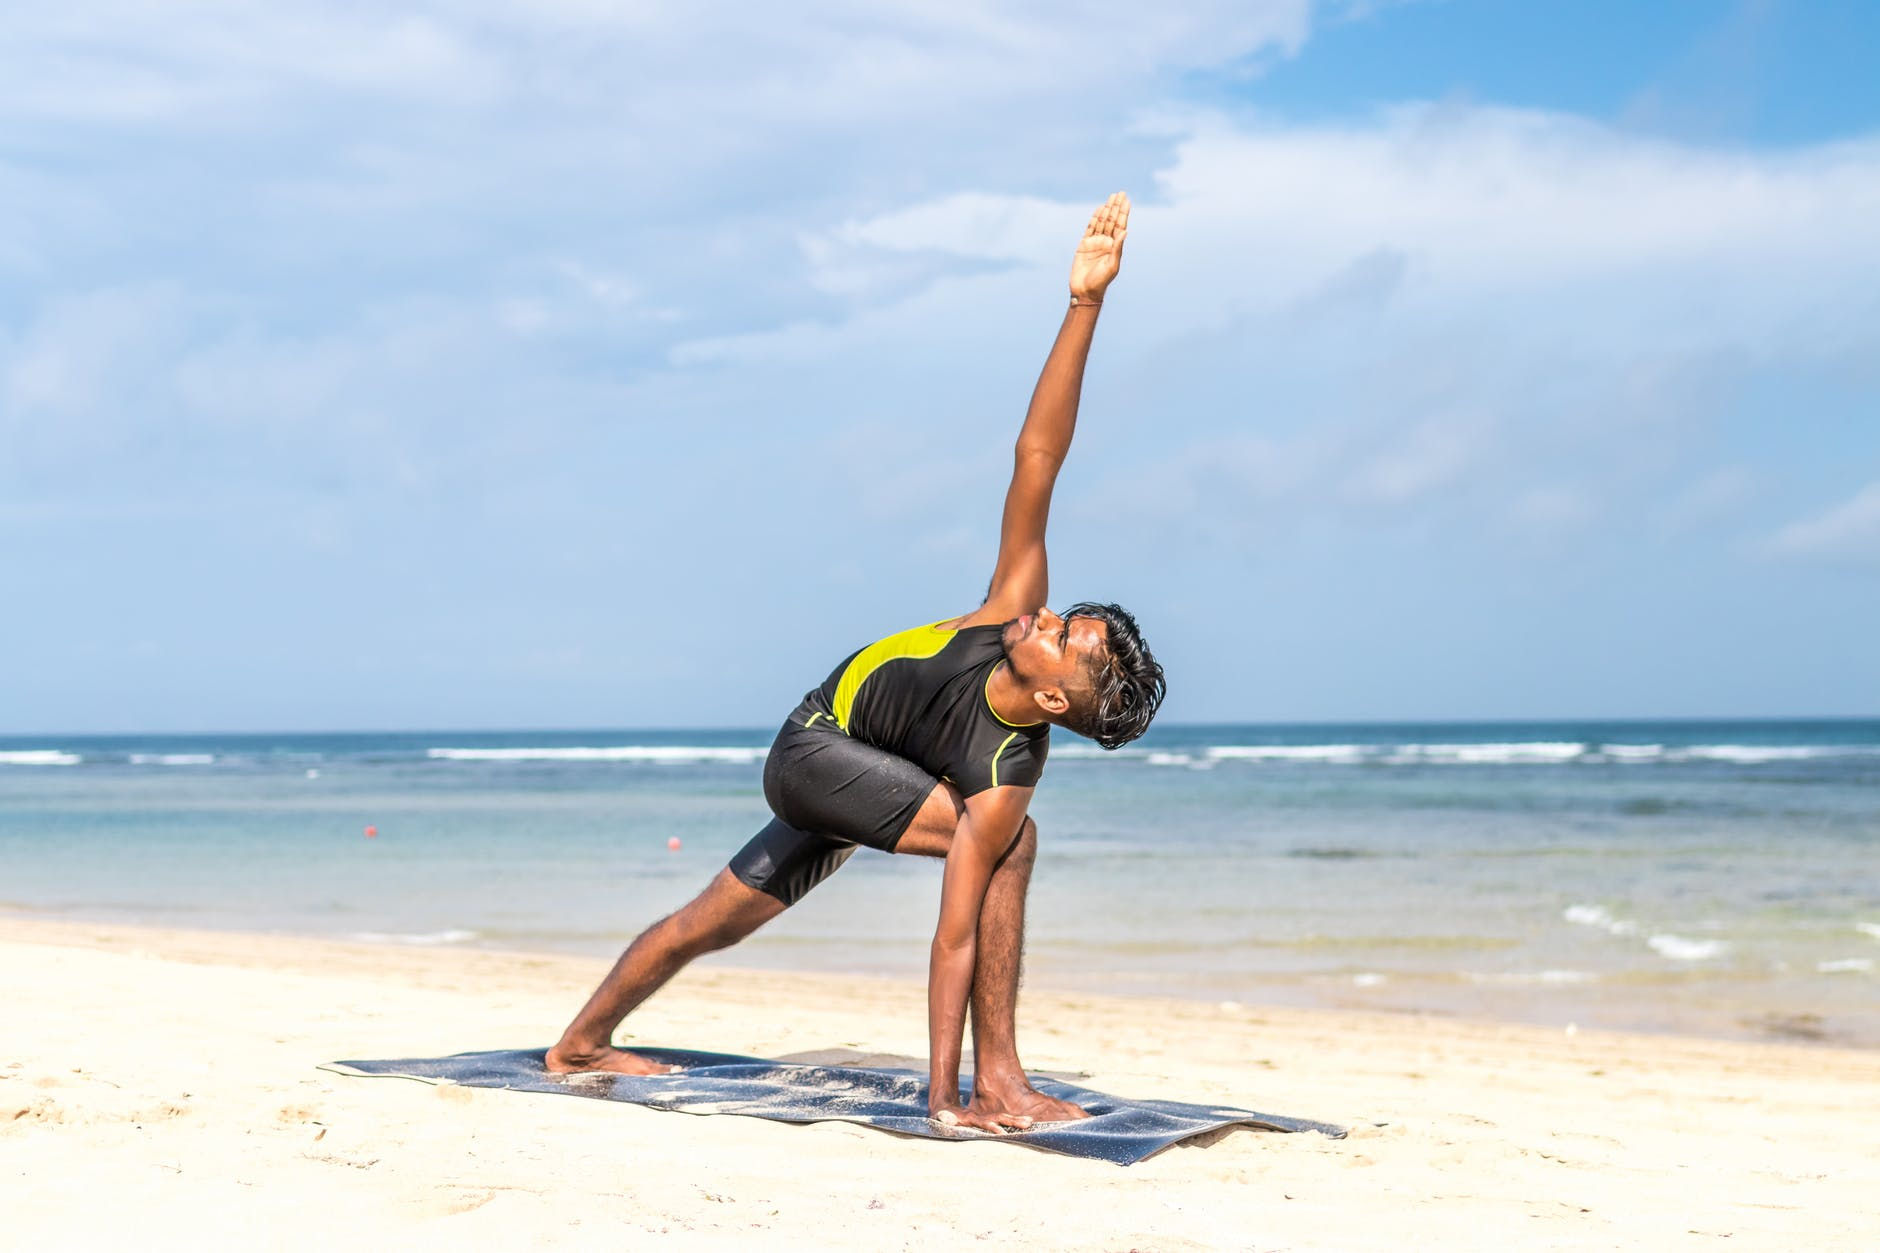 man doing yoga pose on blue mat beside seashore